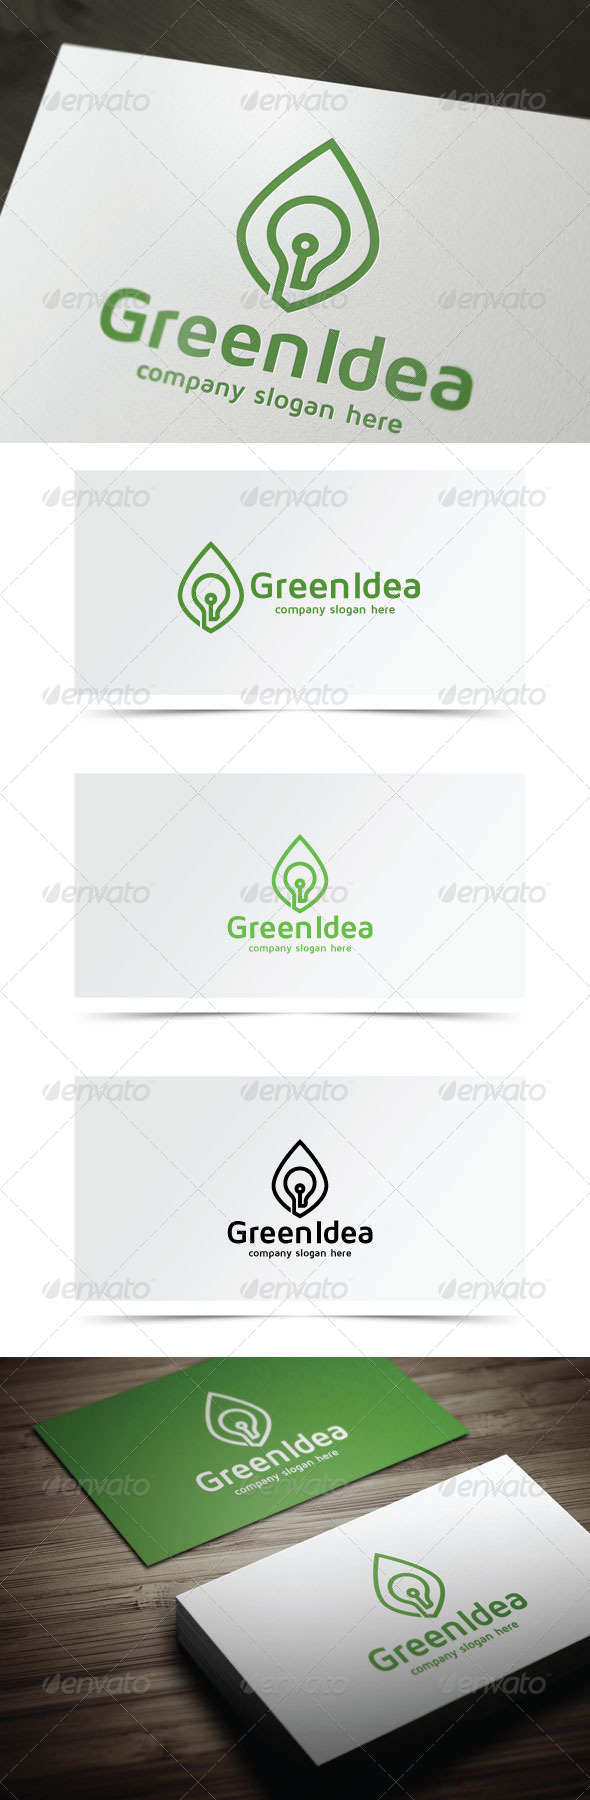 GraphicRiver Green Idea 7501808